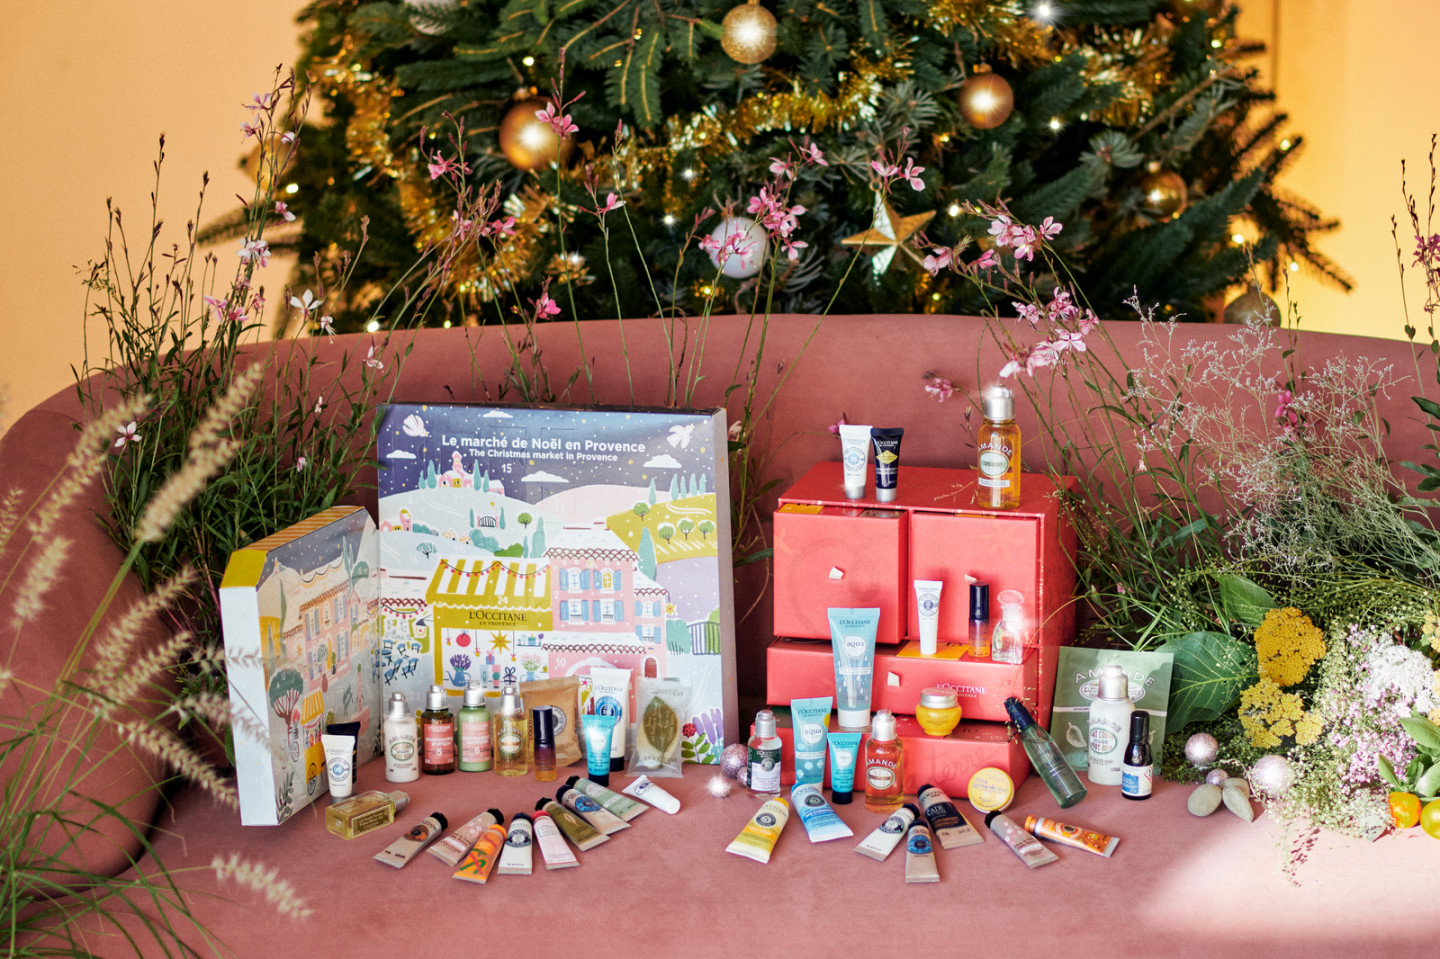 Адвент-календари The Christmas Market in Provence и Luxury Beauty, L'Occitane